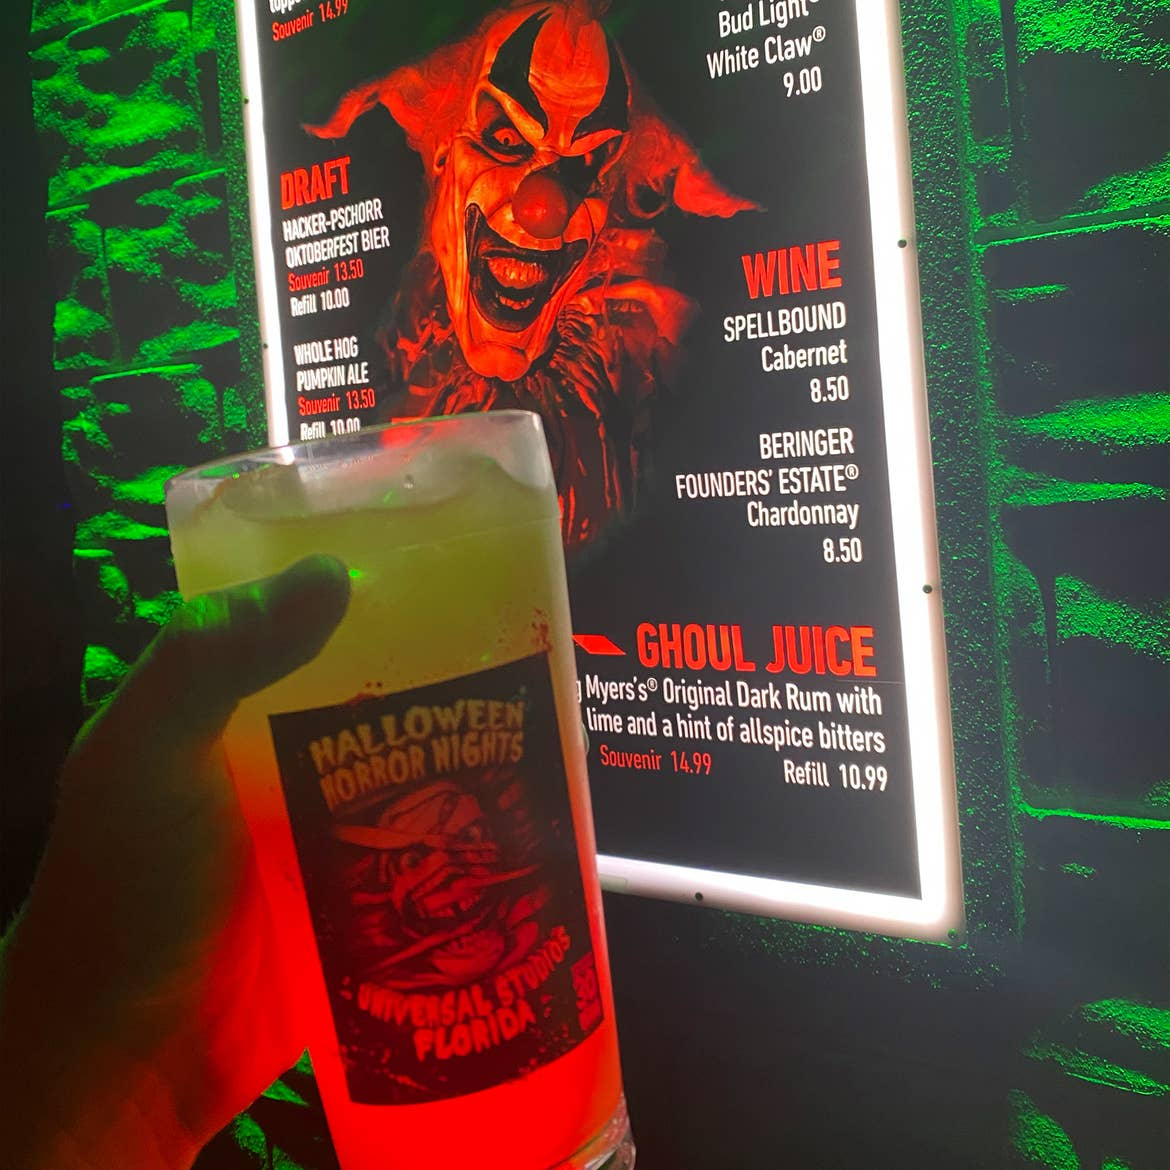 A mixed cocktail drink in a Halloween-themed glass.